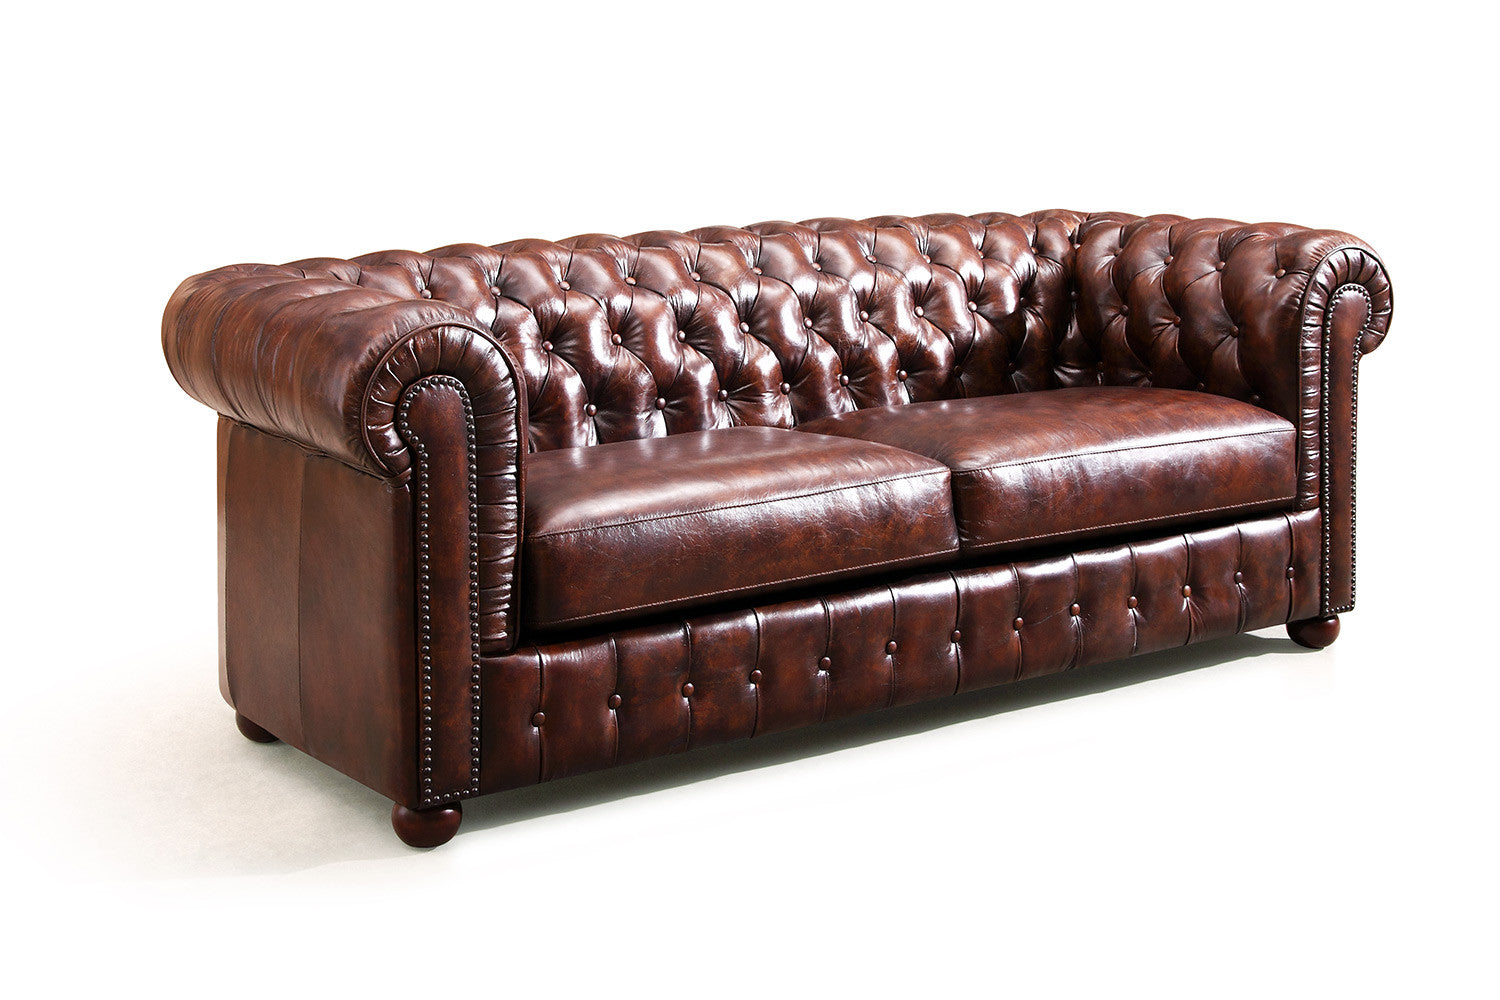 the original chesterfield sofa rose and moore. Black Bedroom Furniture Sets. Home Design Ideas